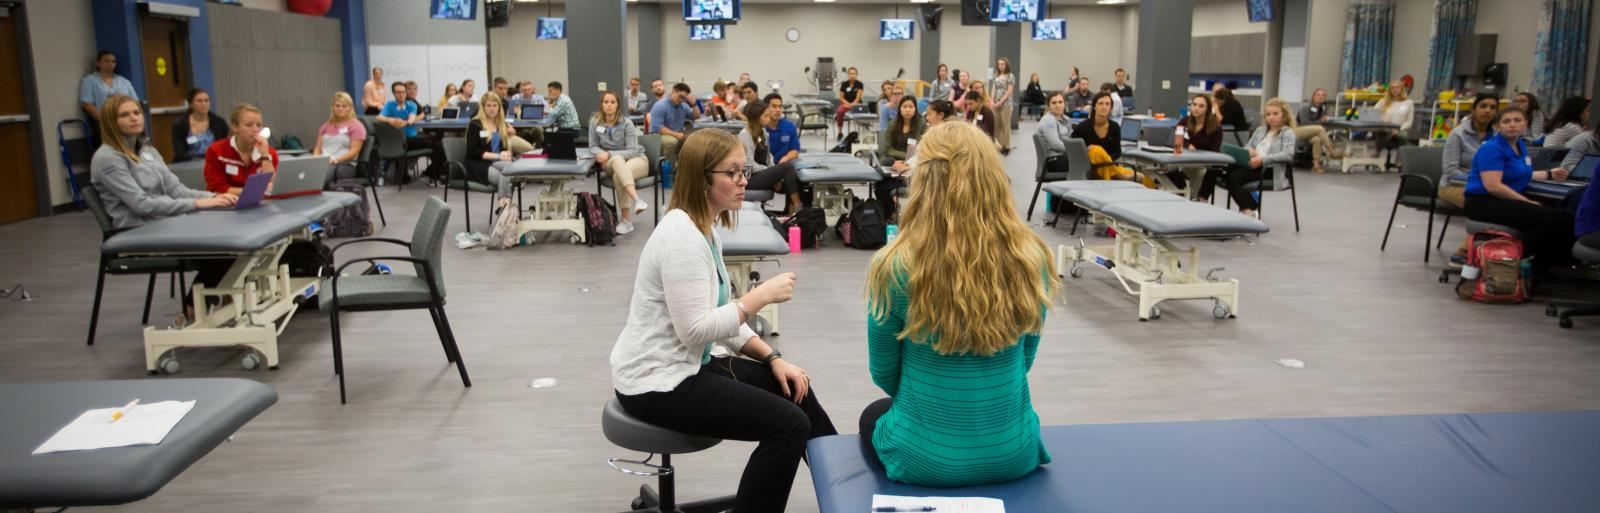 Creighton University School of Physical Therapy students listening to instructor.